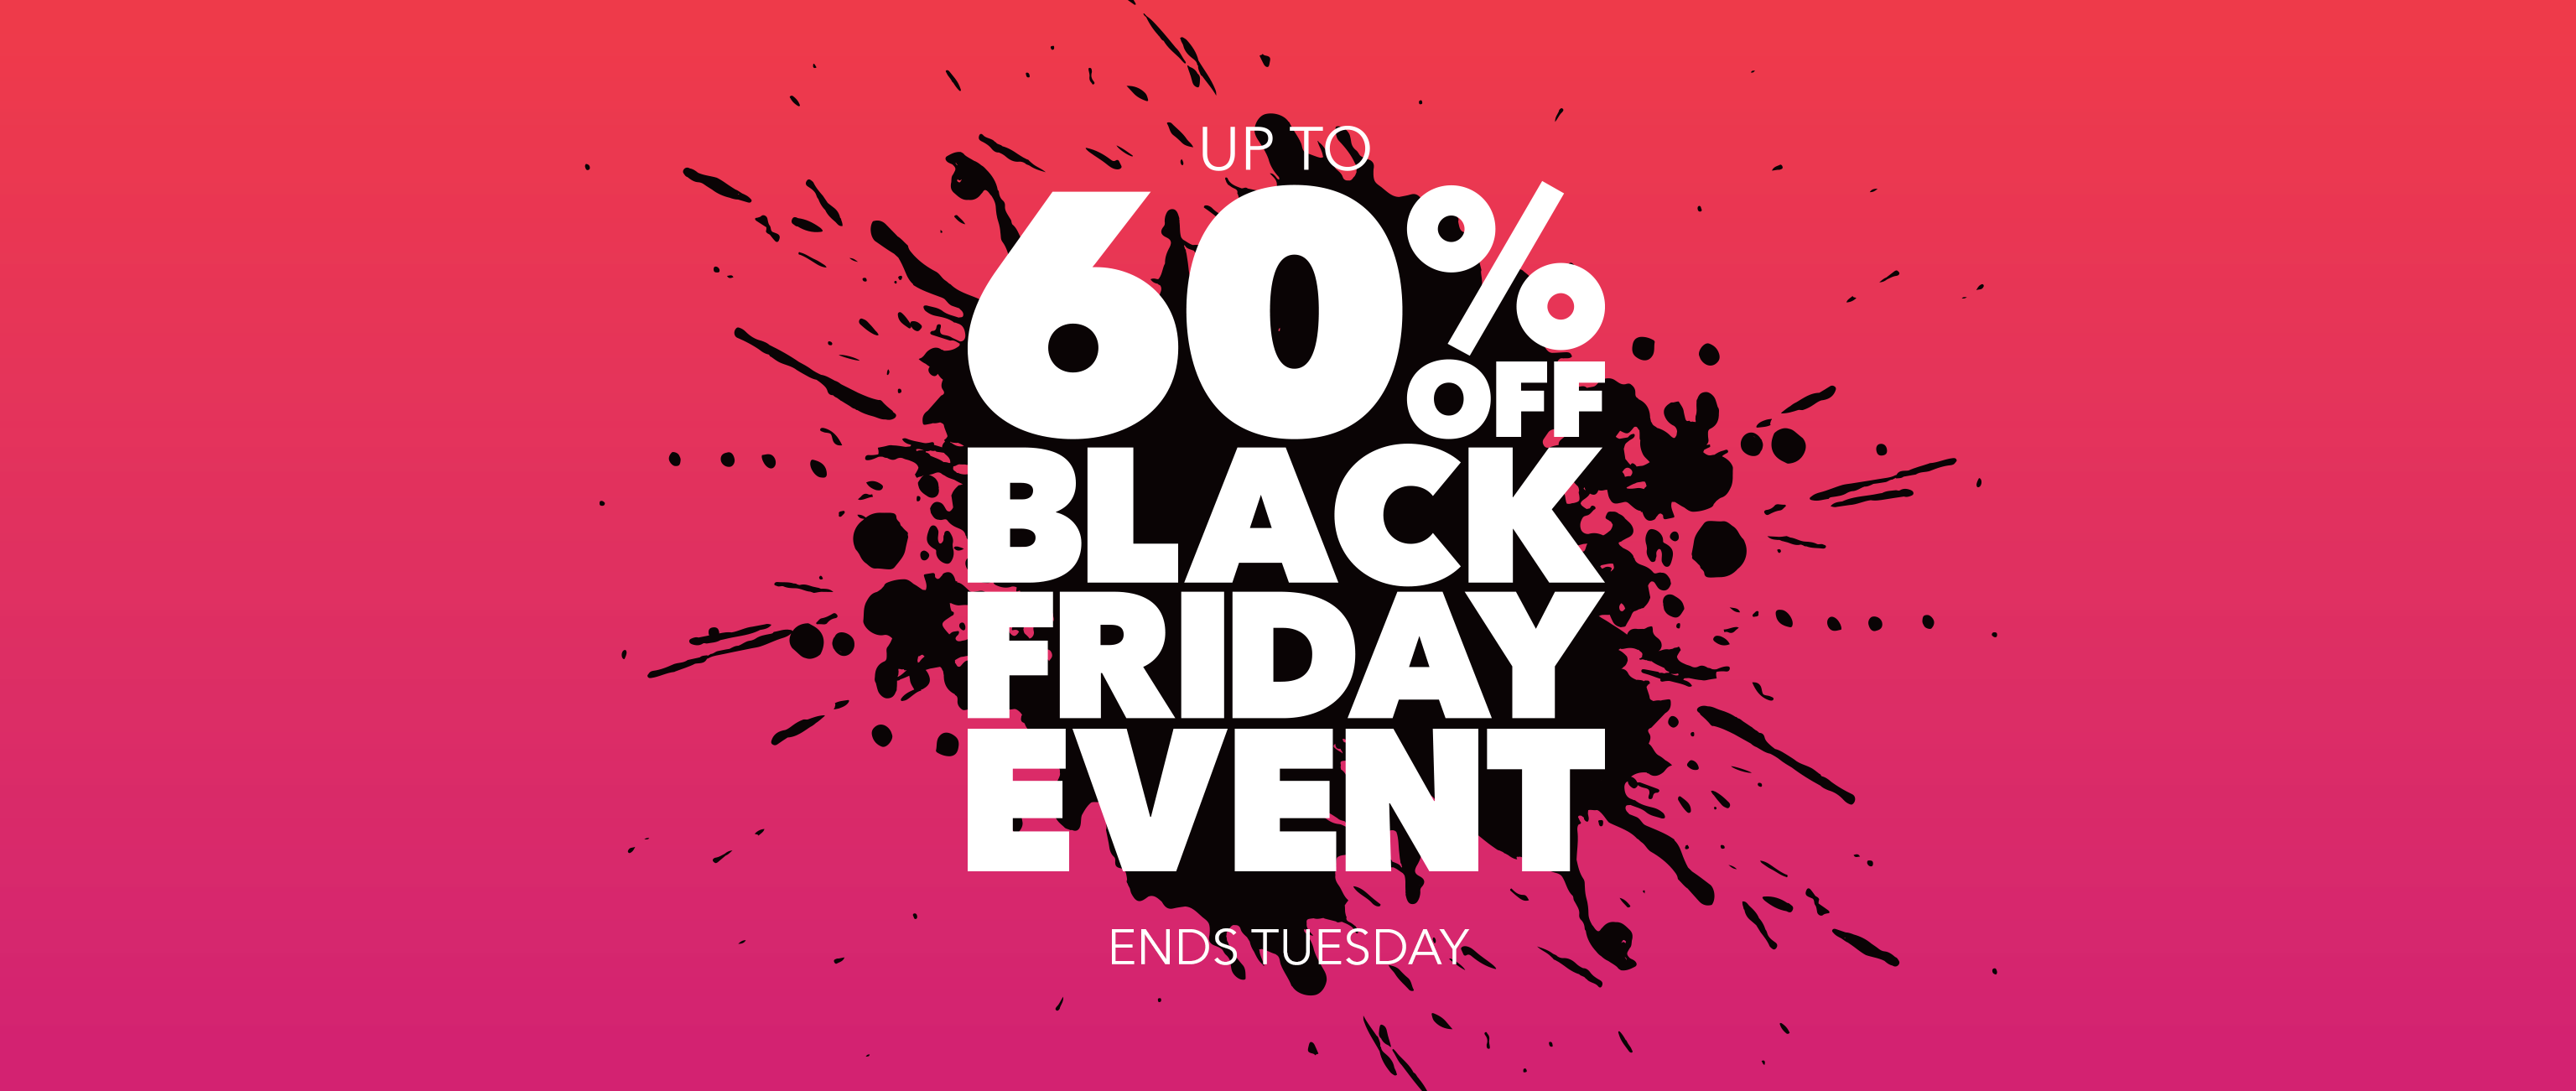 homepage - carousel - 60% off black friday event - flash sale - ends Tuesday